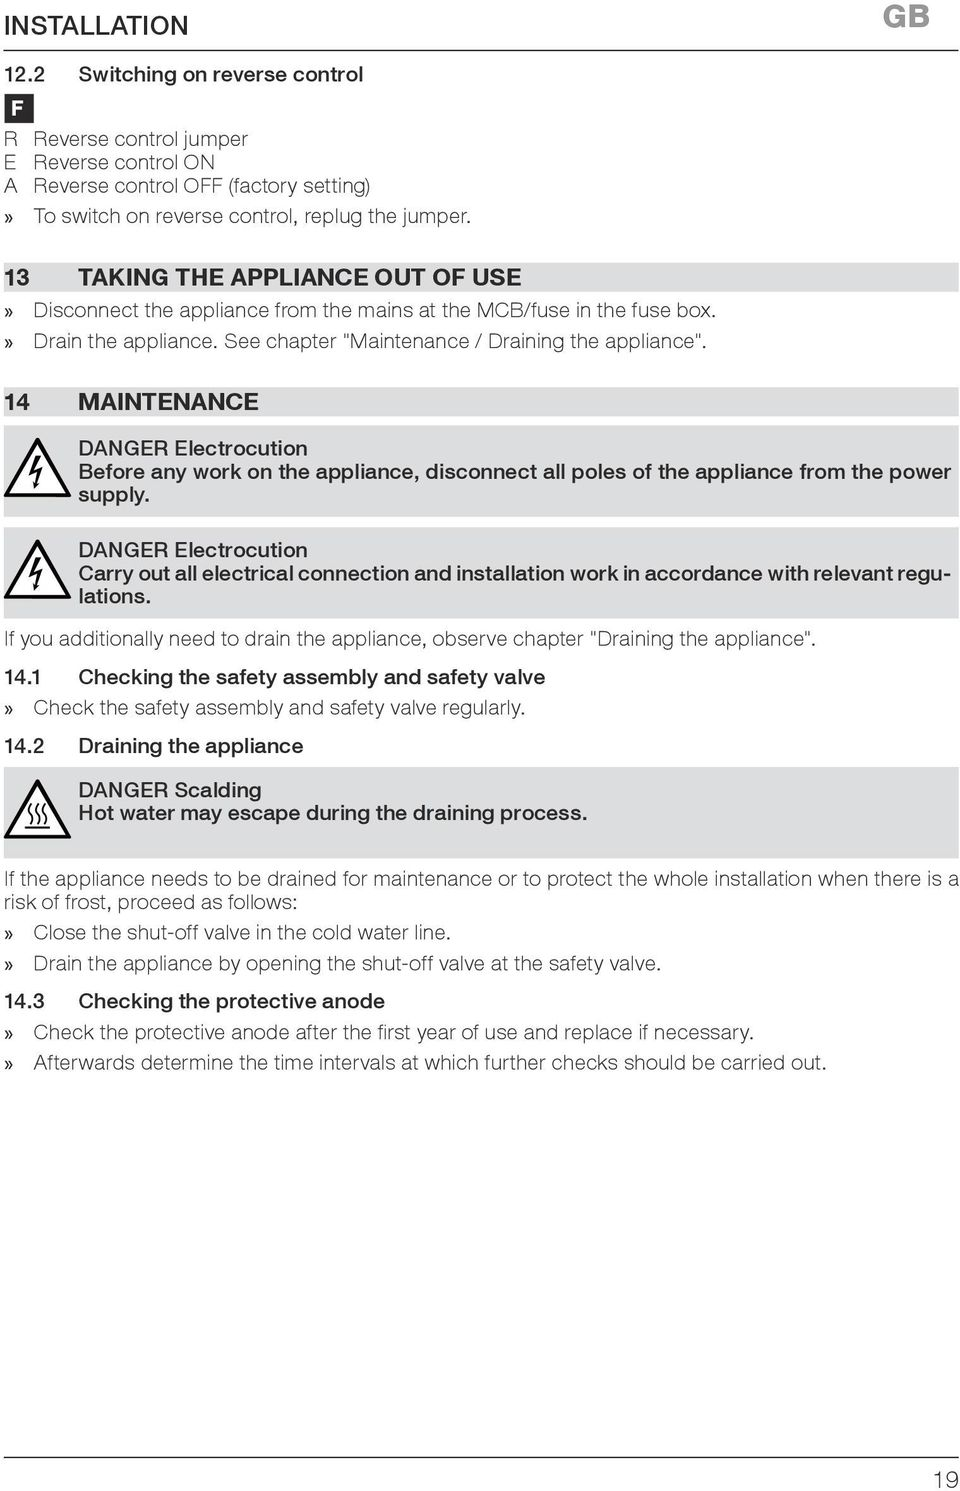 14 Maintenance DANGER Electrocution Before any work on the appliance, disconnect all poles of the appliance from the power supply.